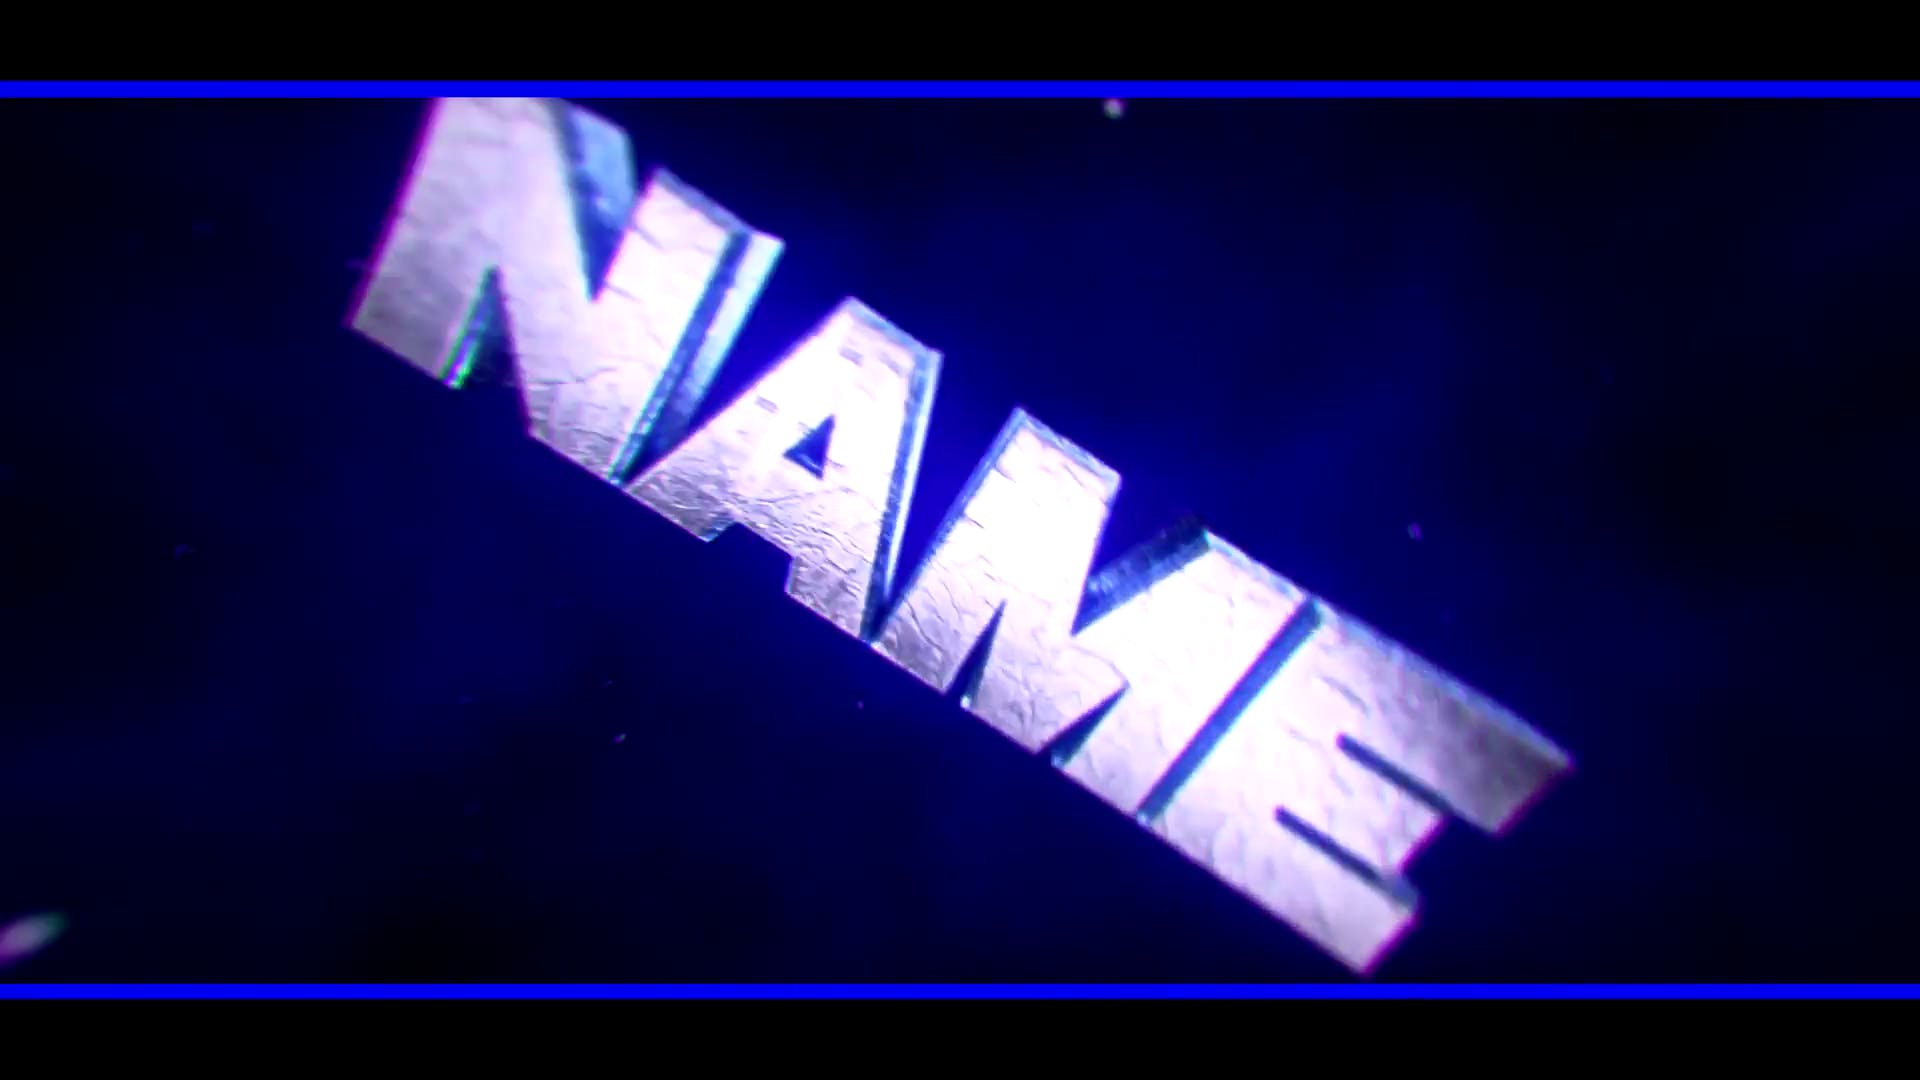 BlinkingClean Intro Template Cinema 4D After Effects wTutorial FREE DOWNLOAD